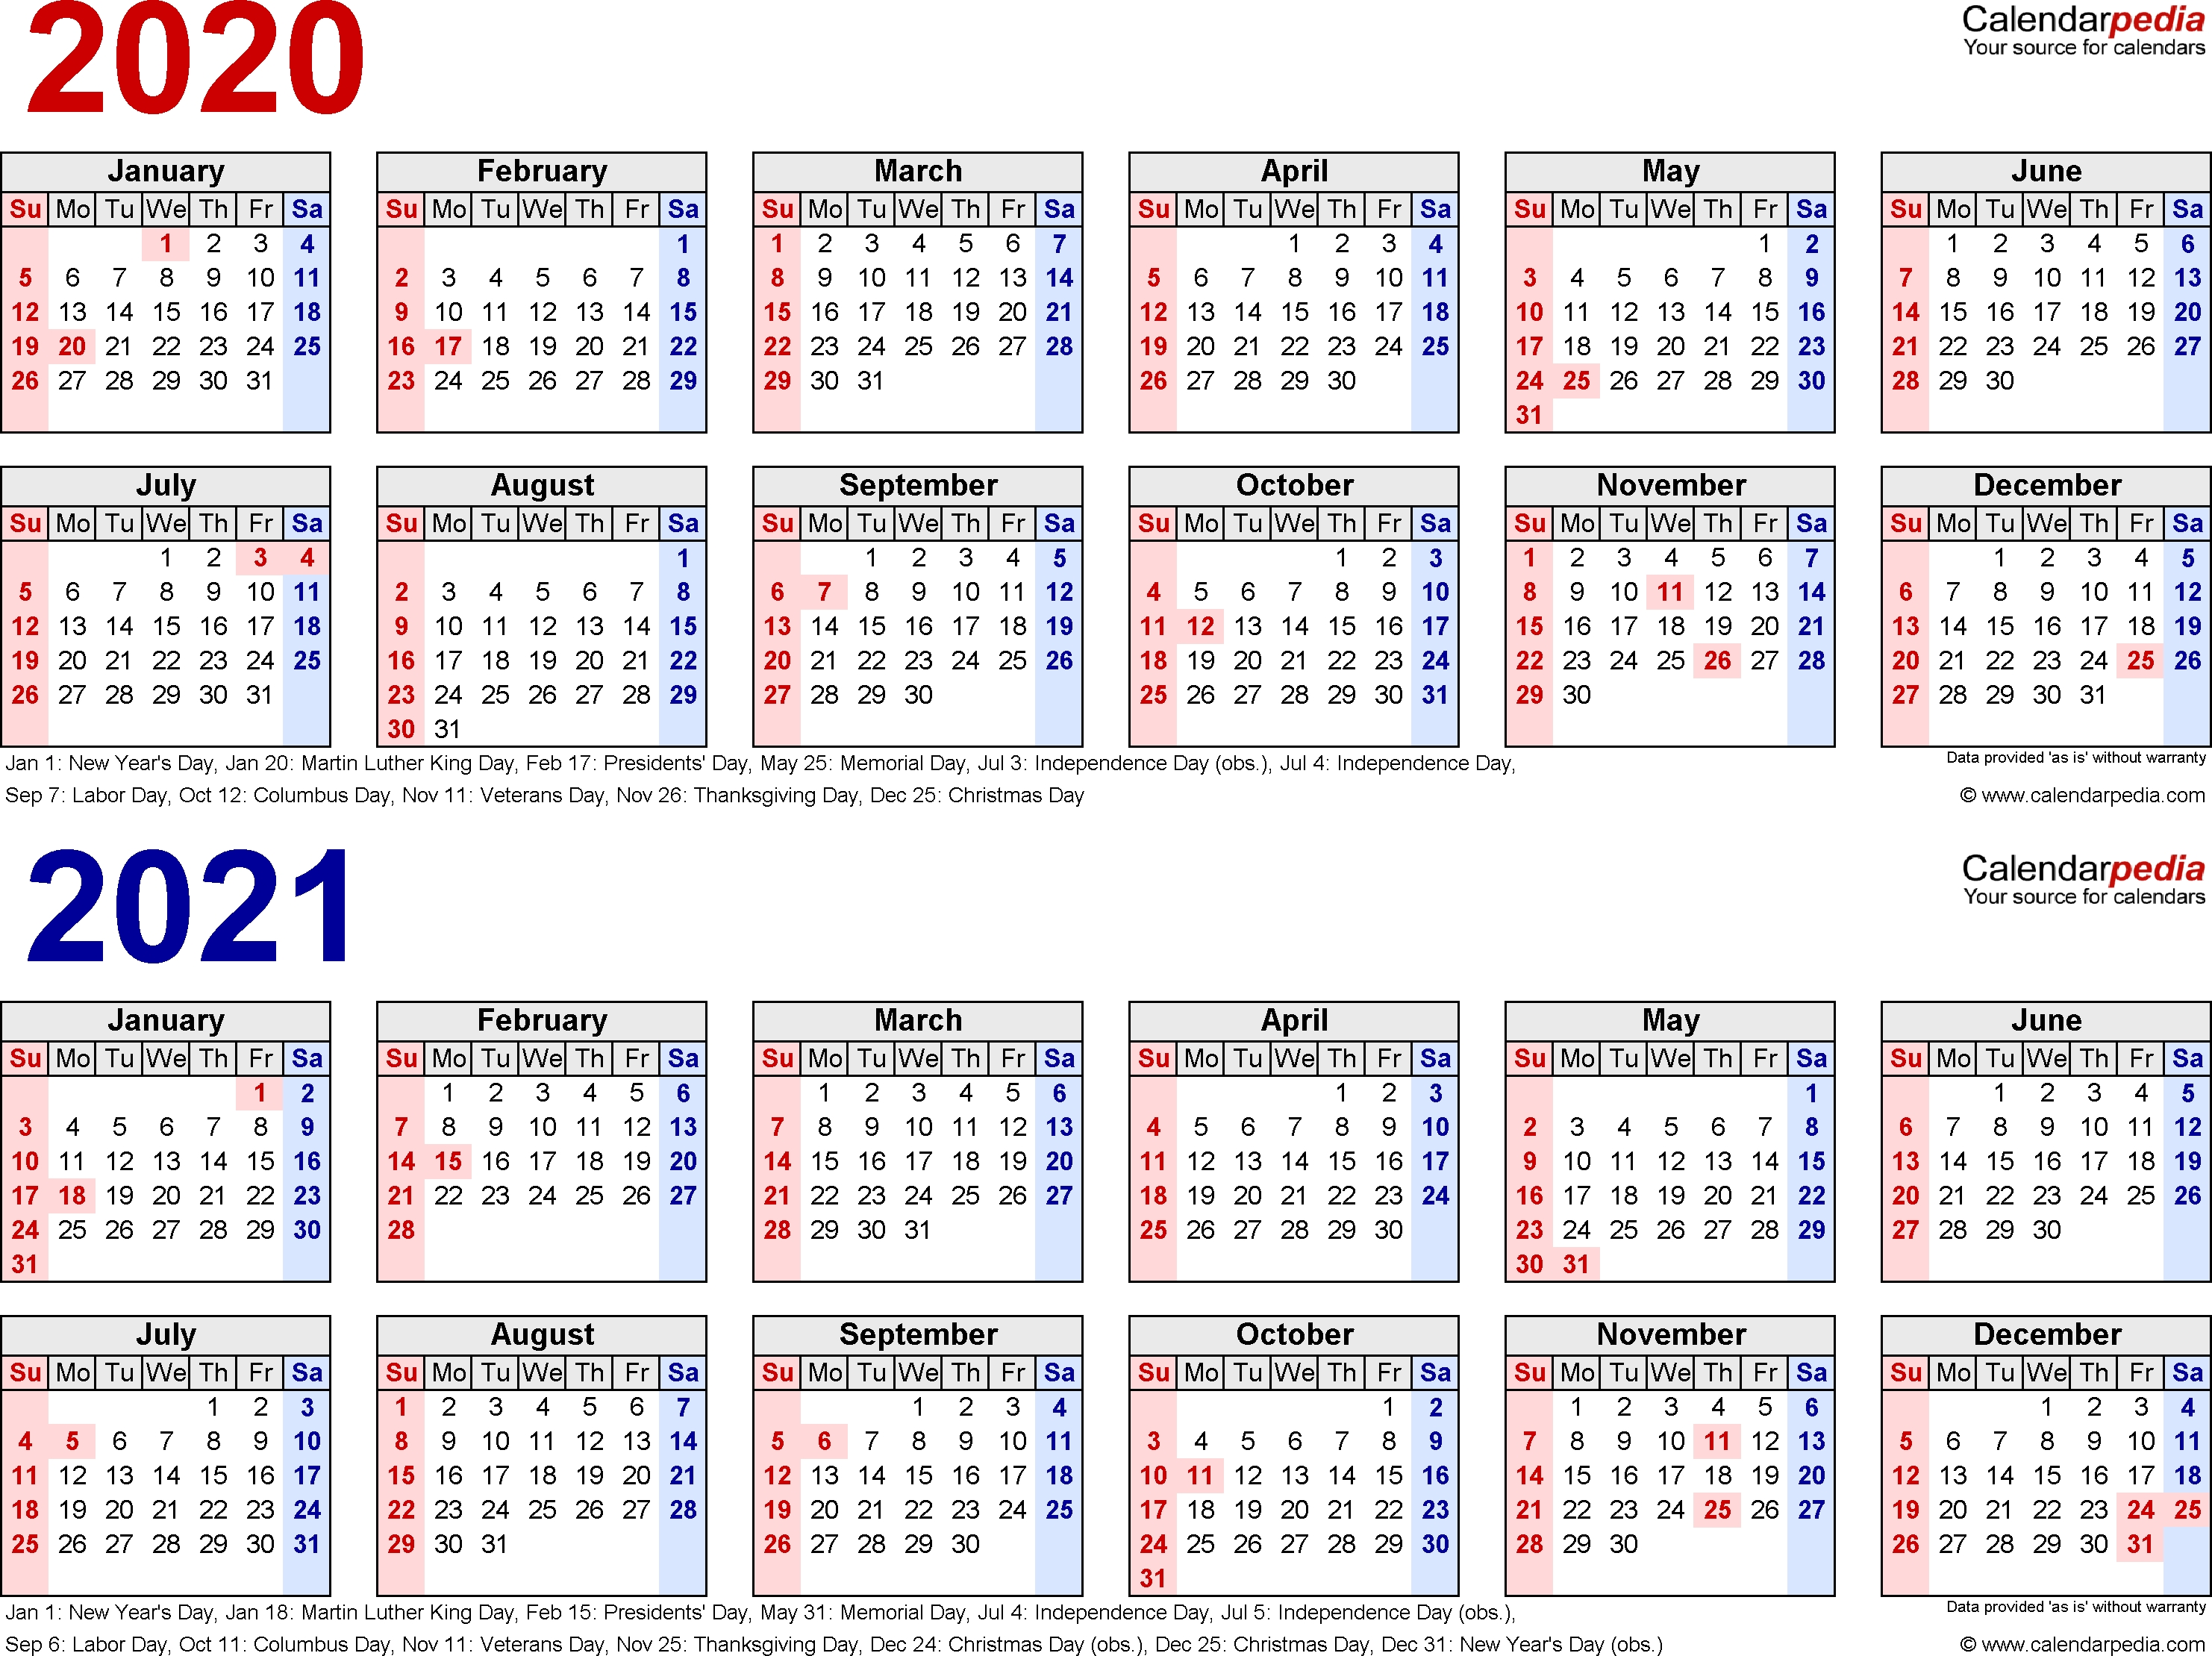 2020-2021 Calendar - Free Printable Two-Year Excel Calendars for Free Printable 3 Year Calendar 2019 2020 2021